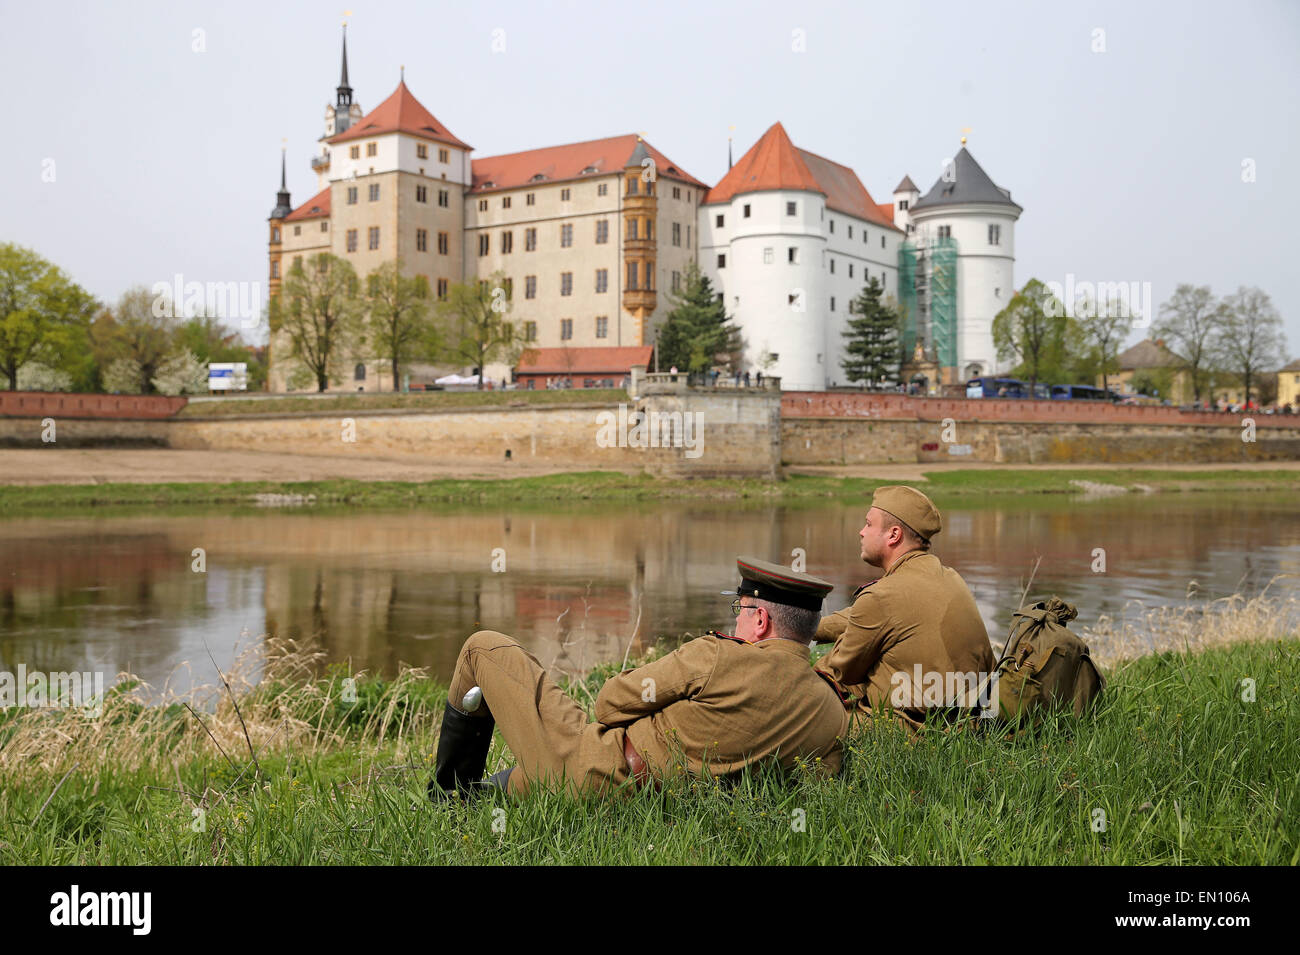 Torgau, Germany. 25th Apr, 2015. Participants of a reenactment of the World War II liberation sit next to the river Stock Photo